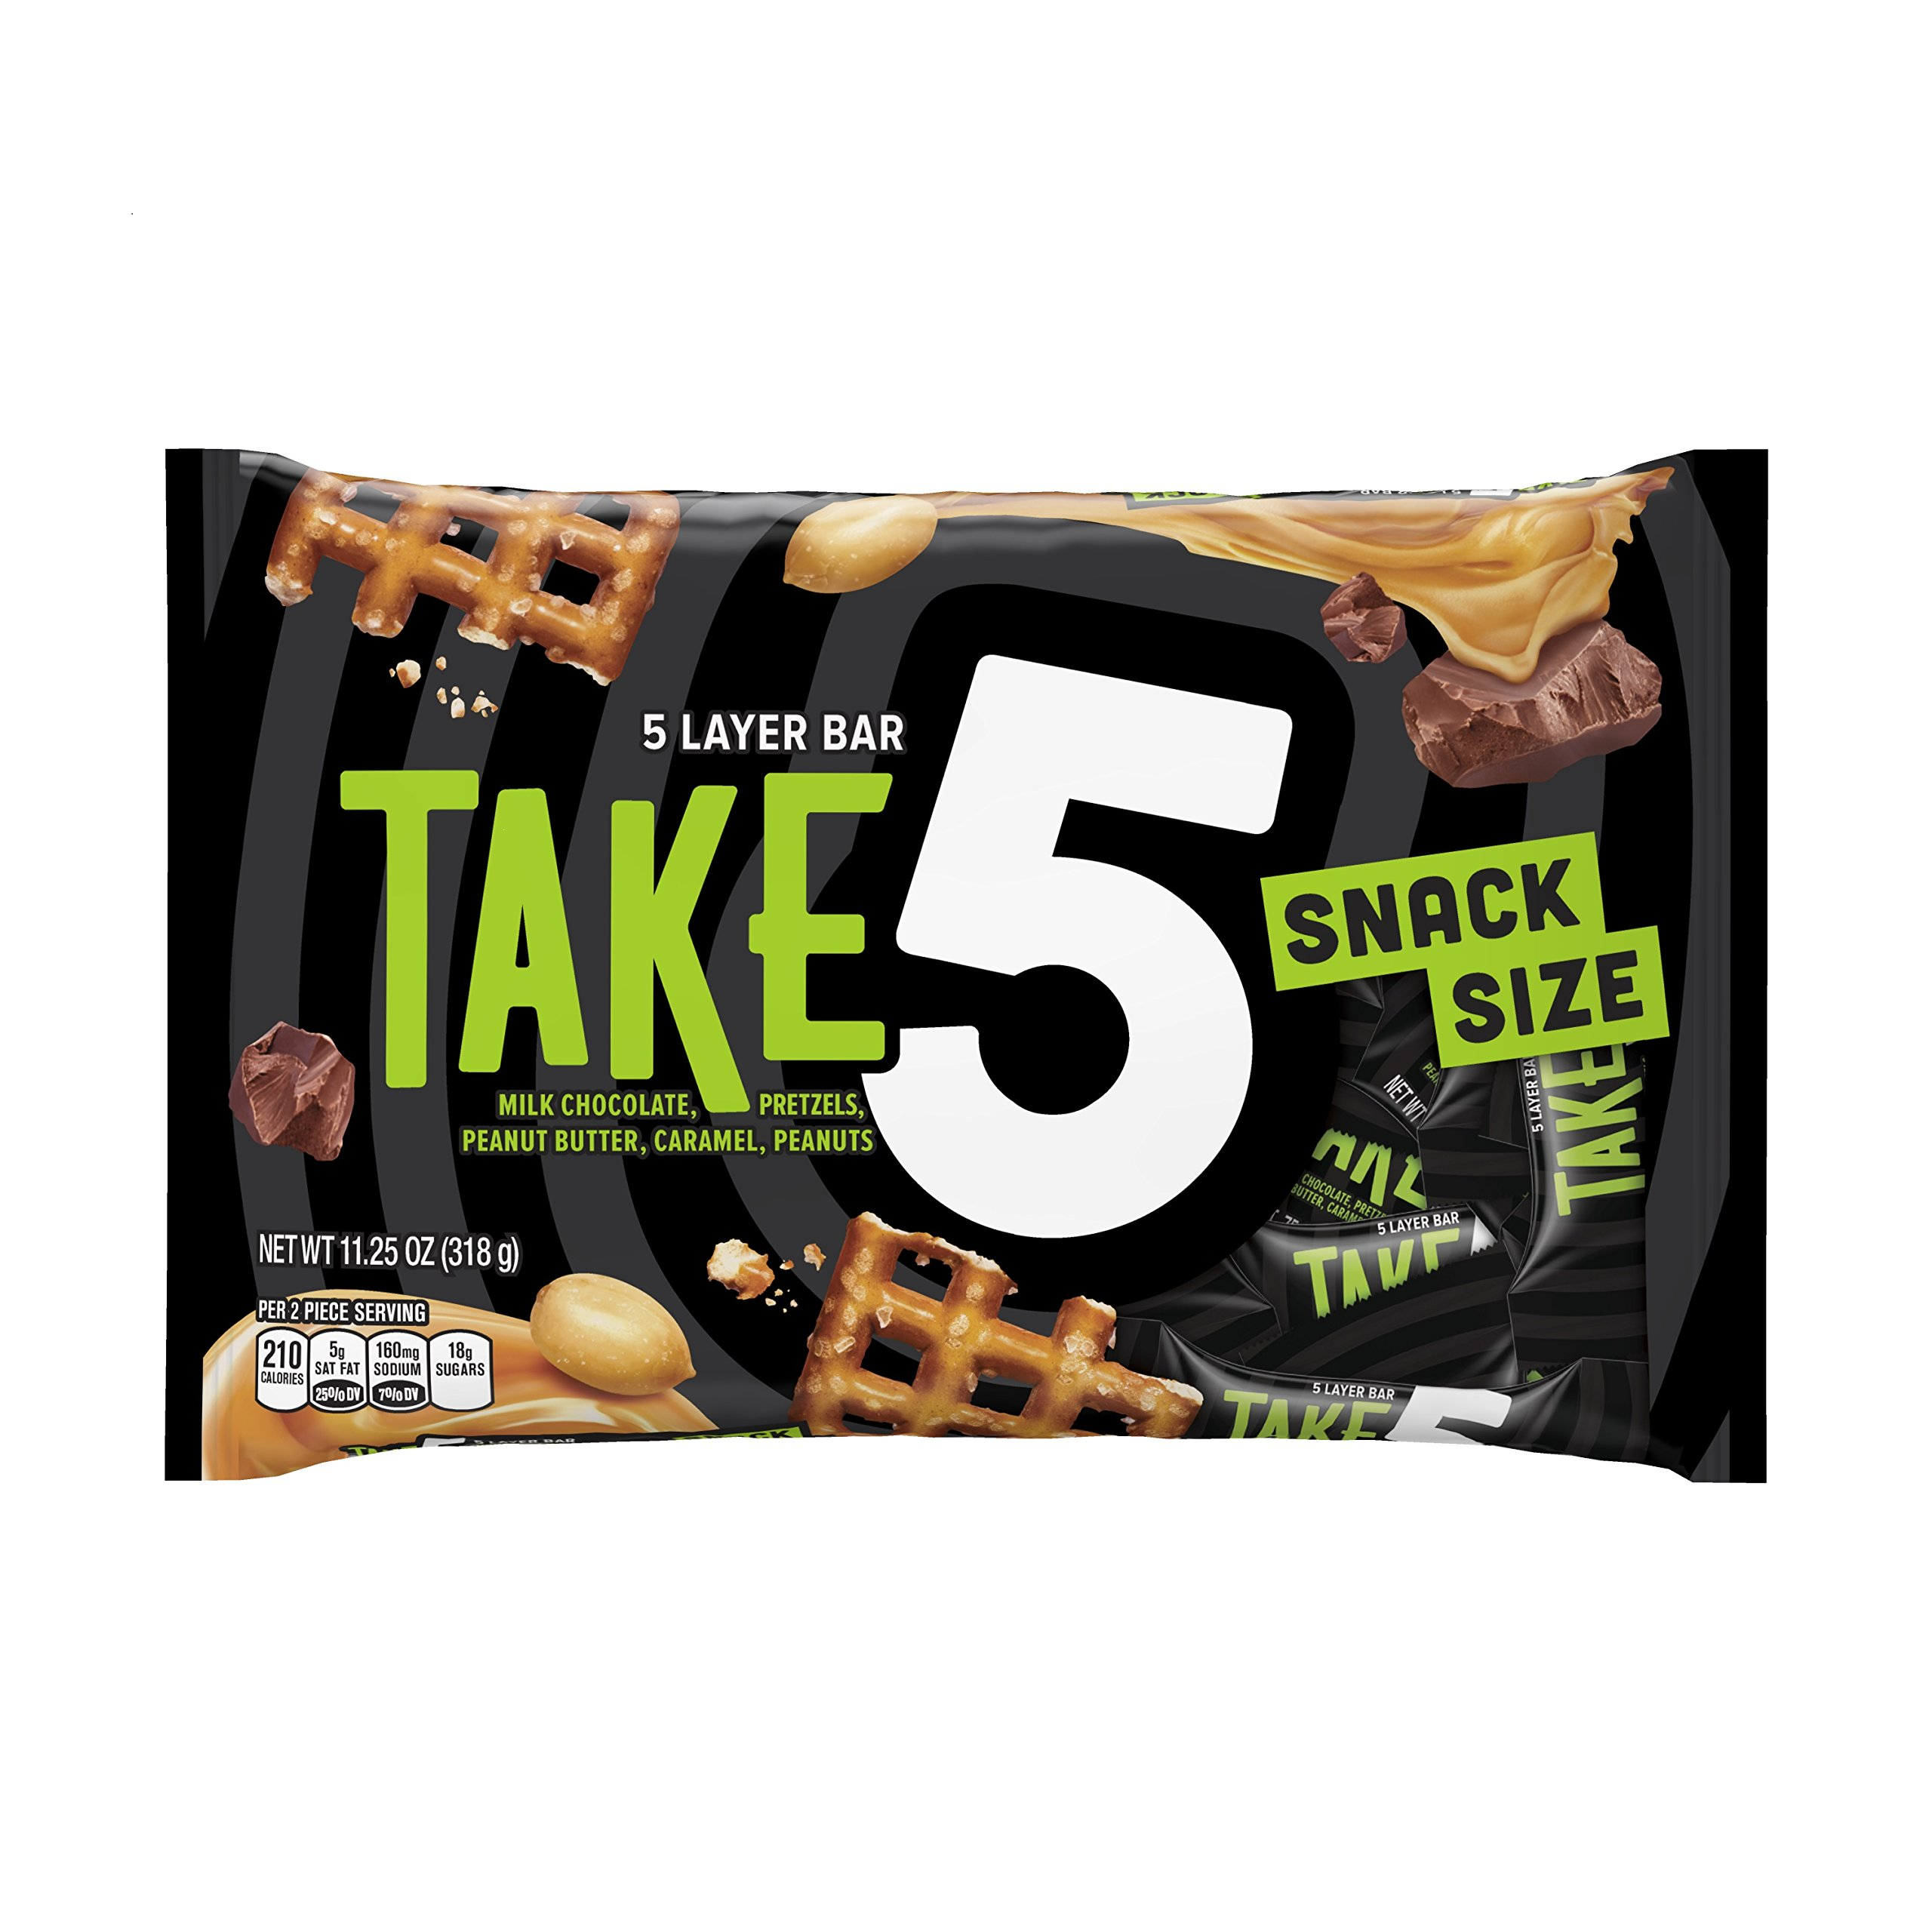 TAKE5 Snack Size Bars (11.25-Ounce Bag, Pack of 6)